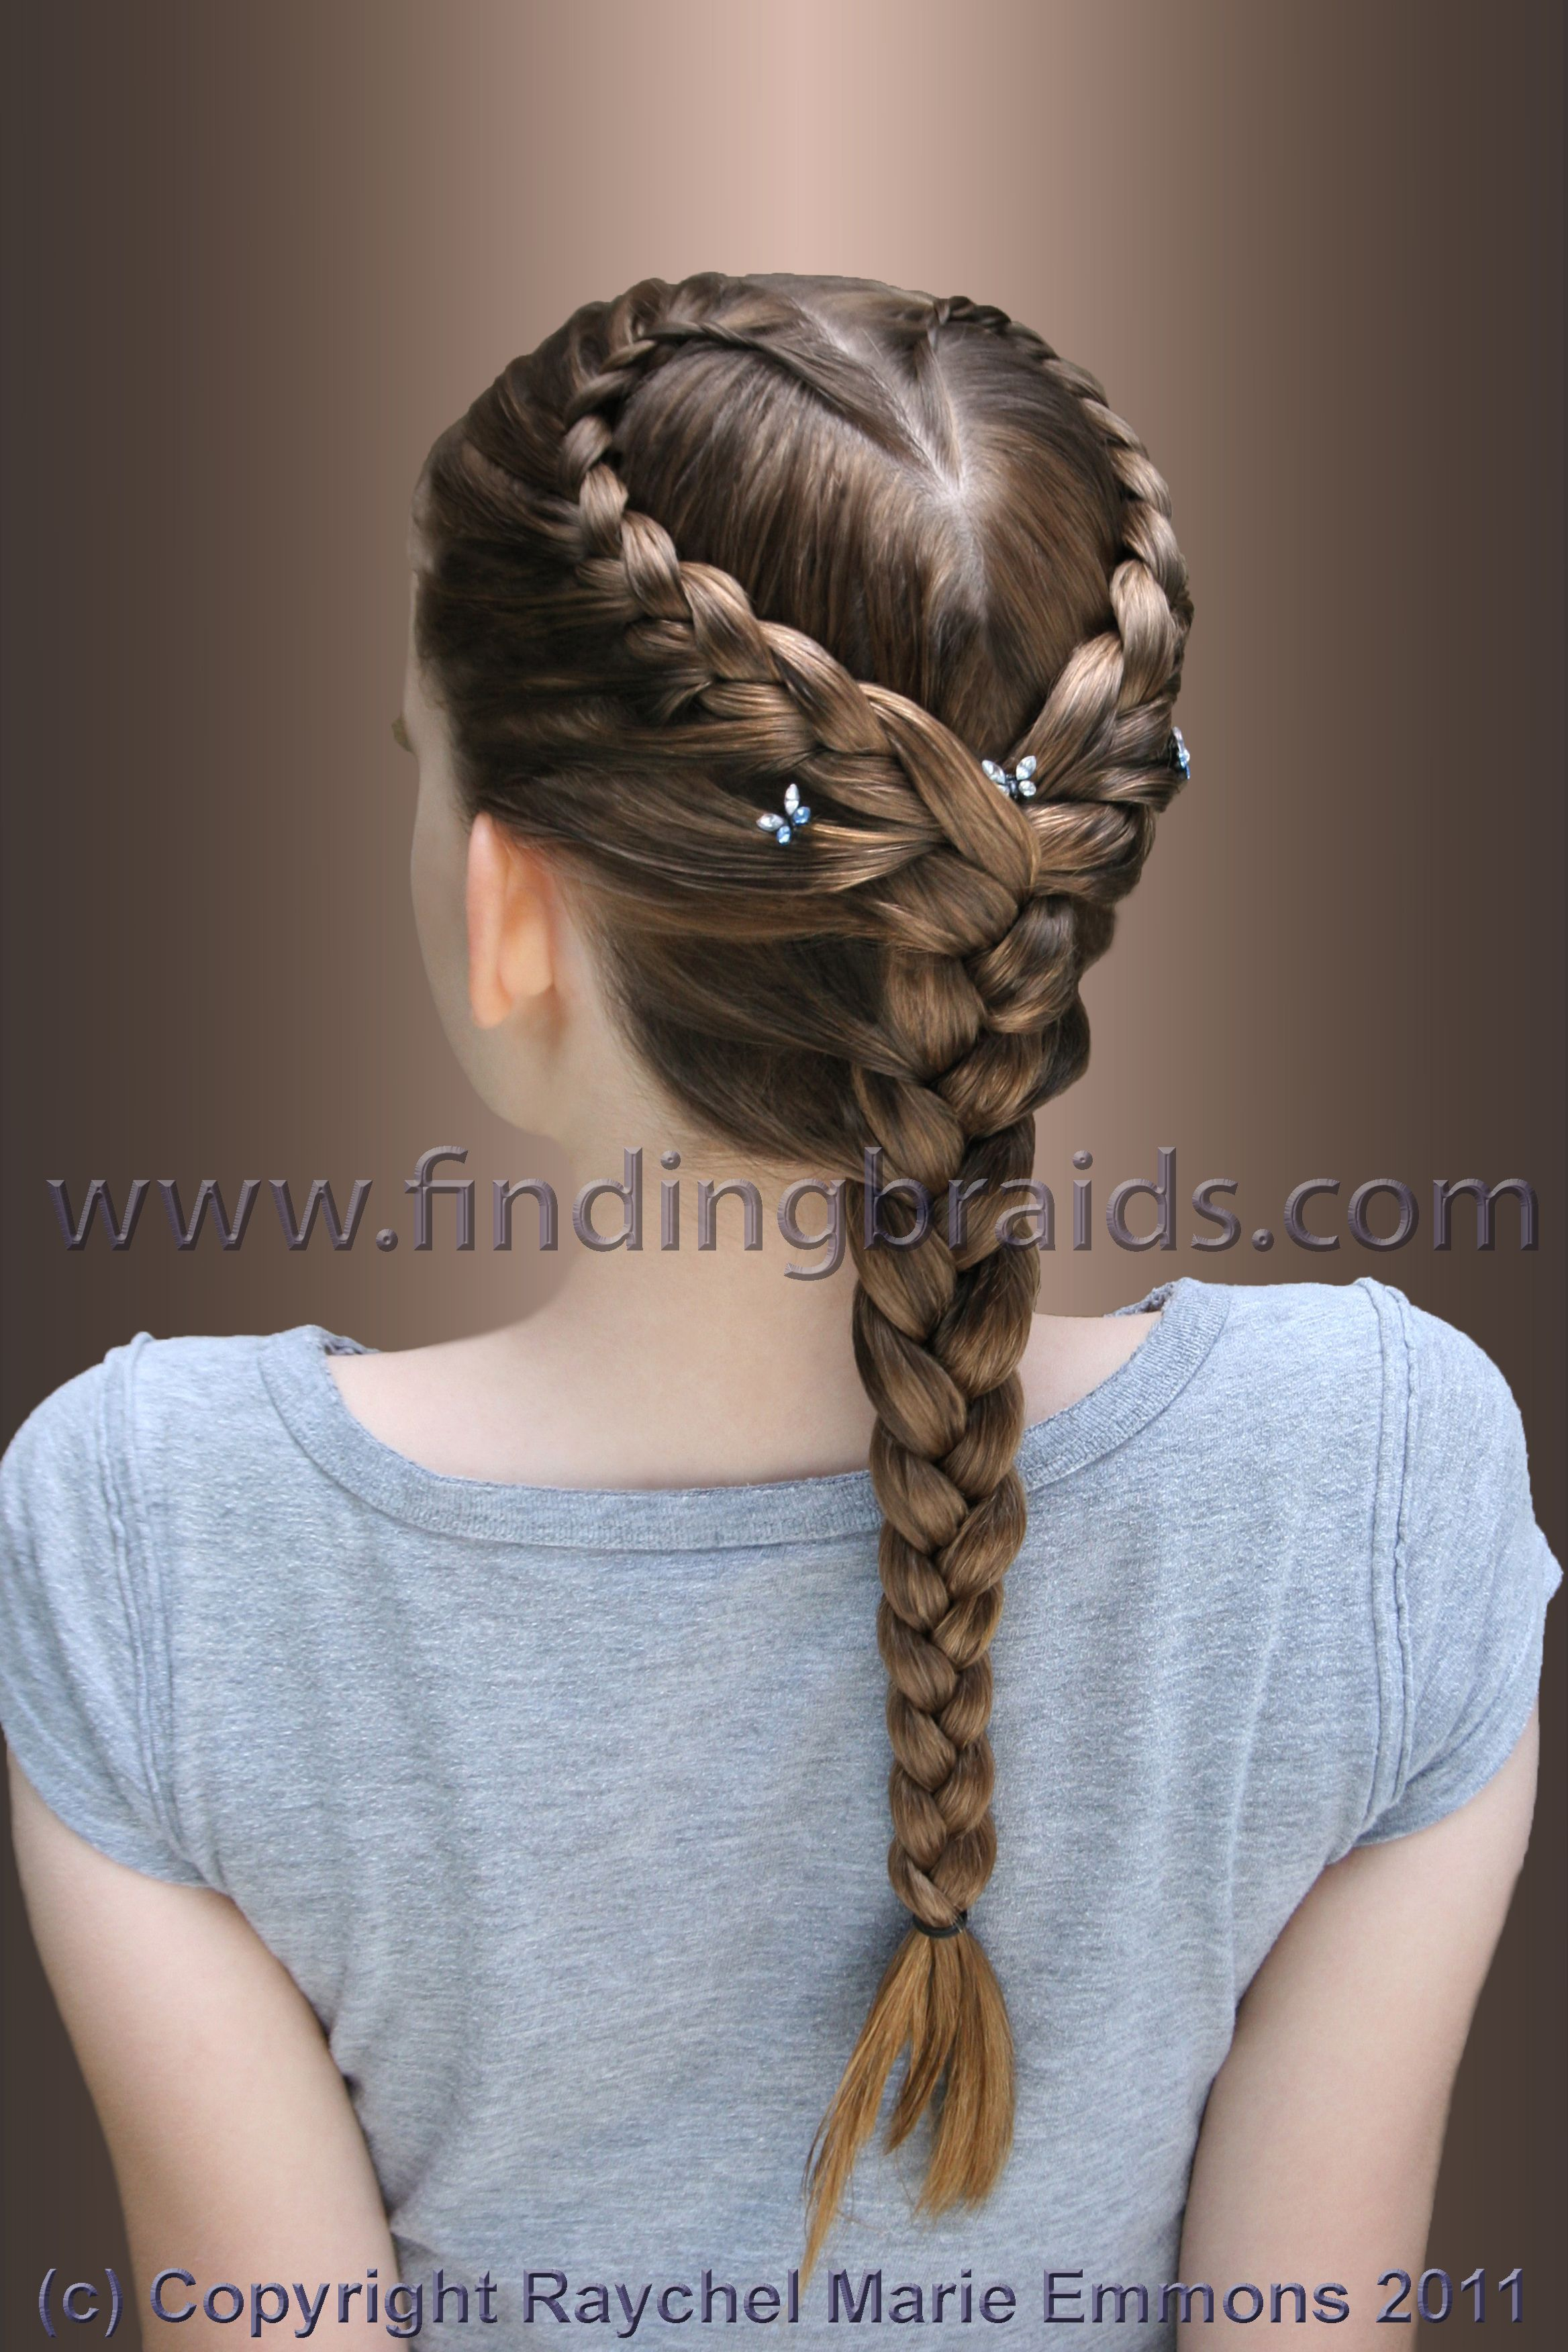 French Braid Hairstyles Unique Heart Braid Hairstyles Using Braids Pinterest  Heart Braid